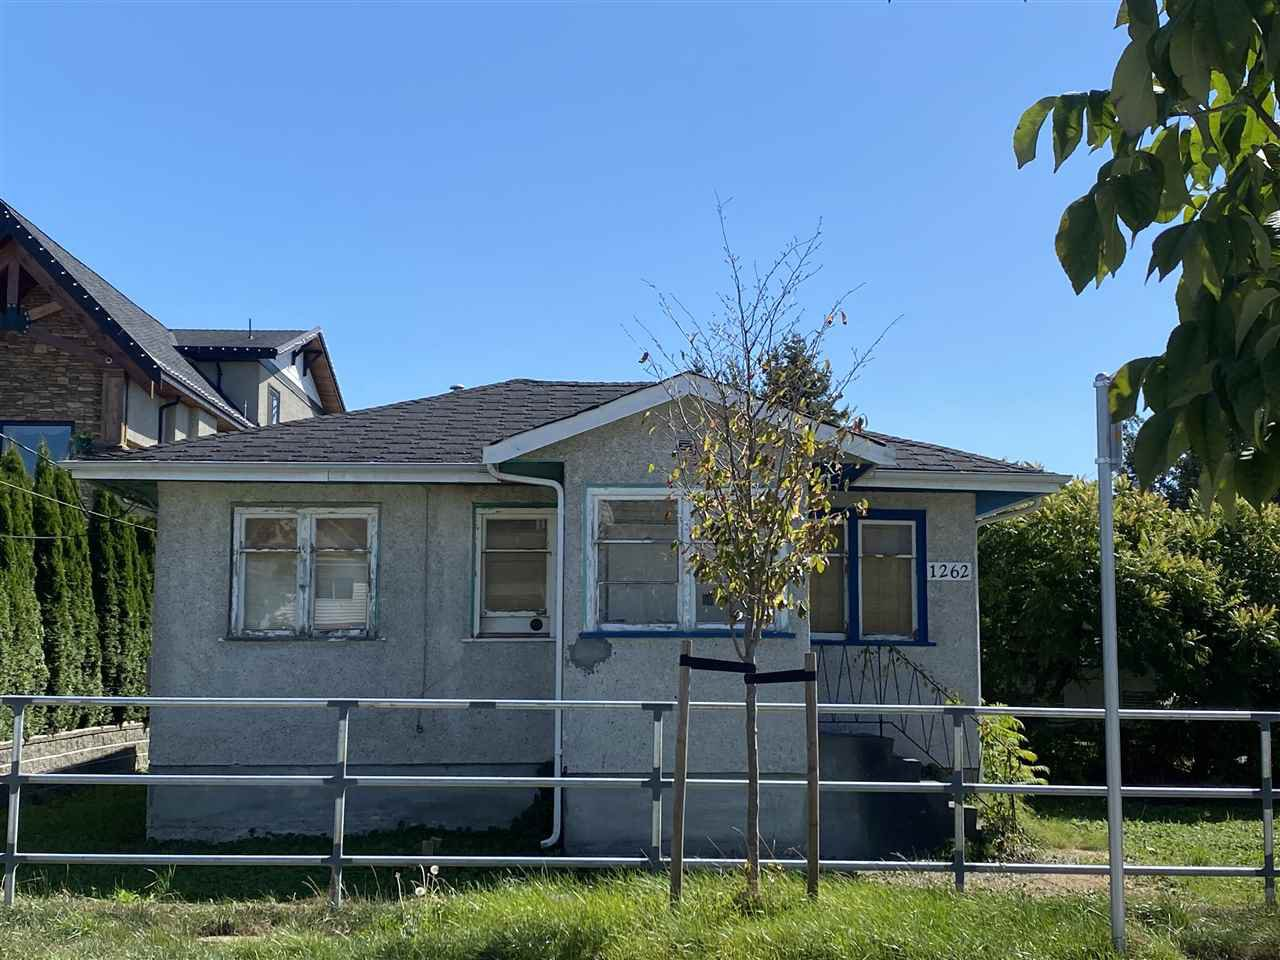 Main Photo: 1262 EWEN Avenue in New Westminster: Queensborough House for sale : MLS®# R2488372